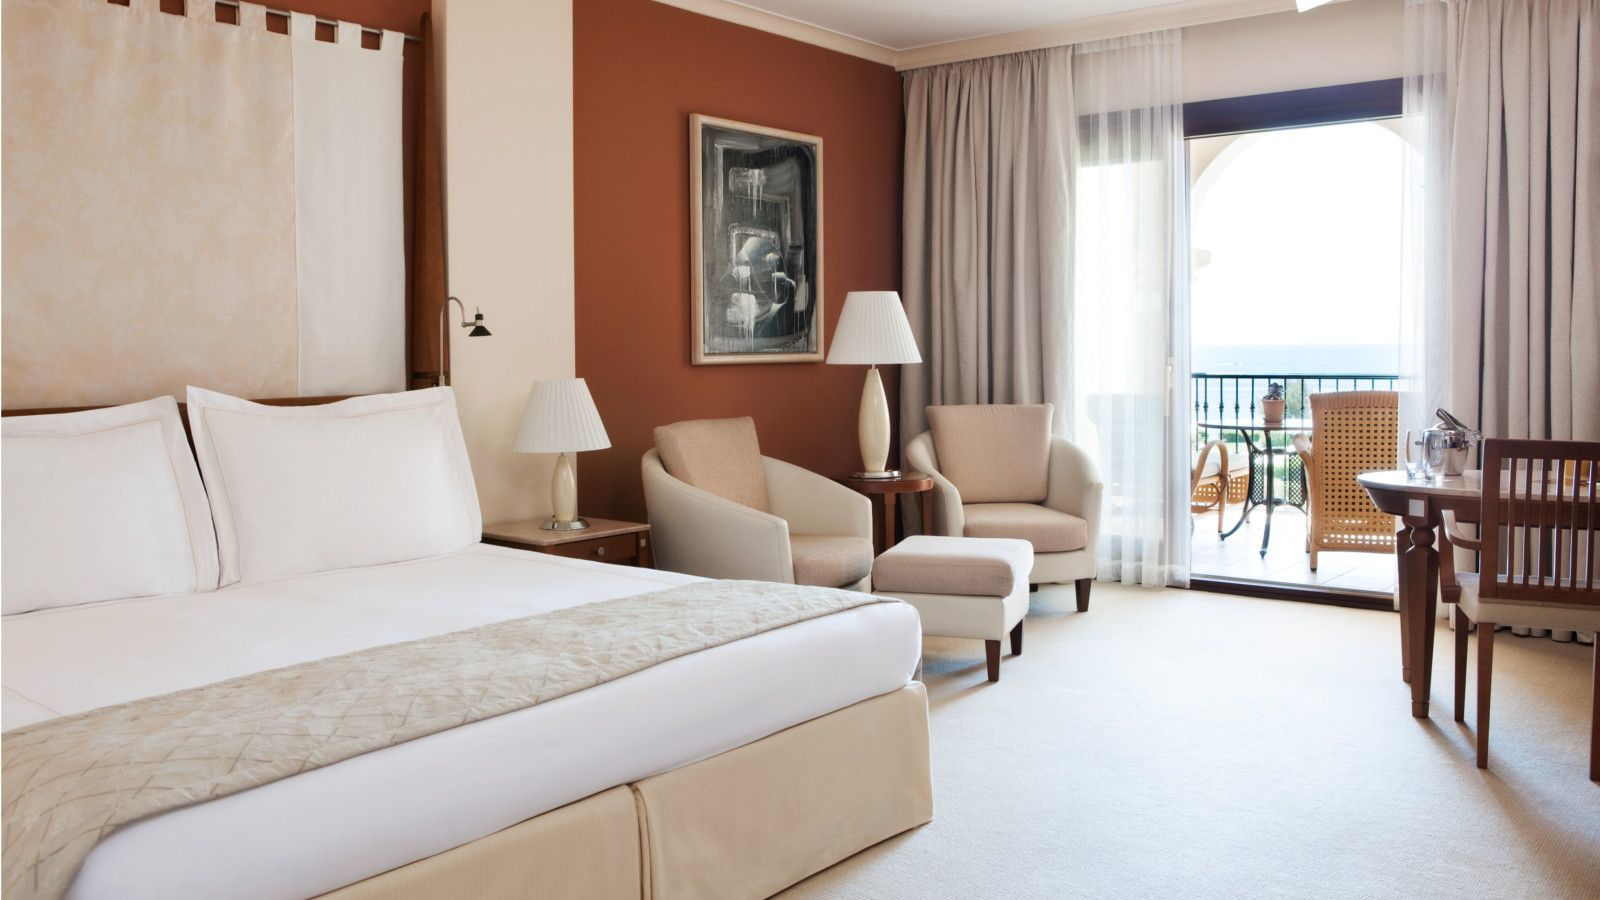 Grand Deluxe Room at the St. Regis Mallorca Resort